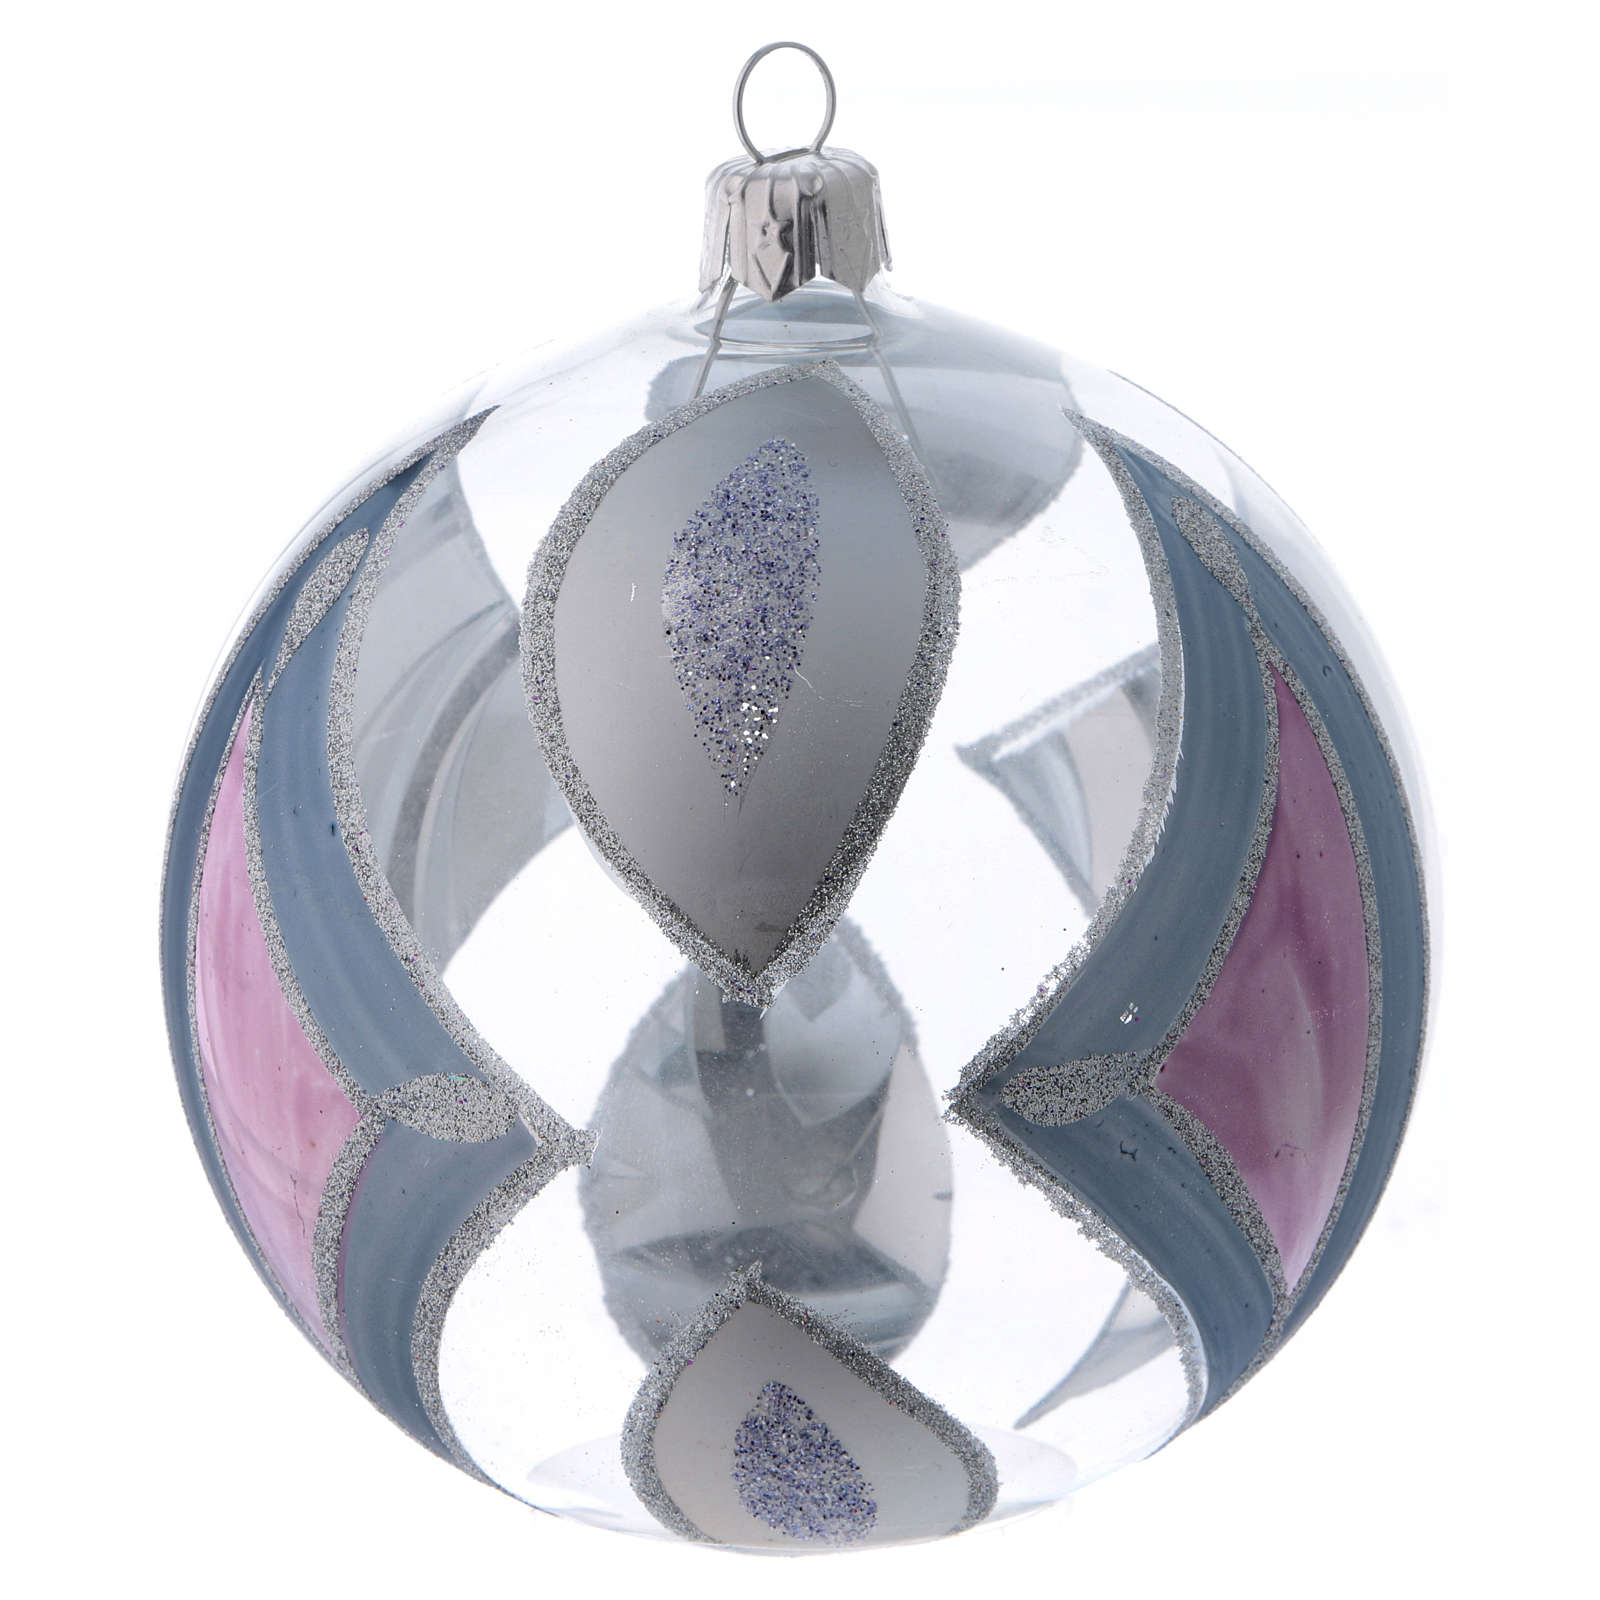 Transparent ball Christmas ornament with decorations 10 cm 4